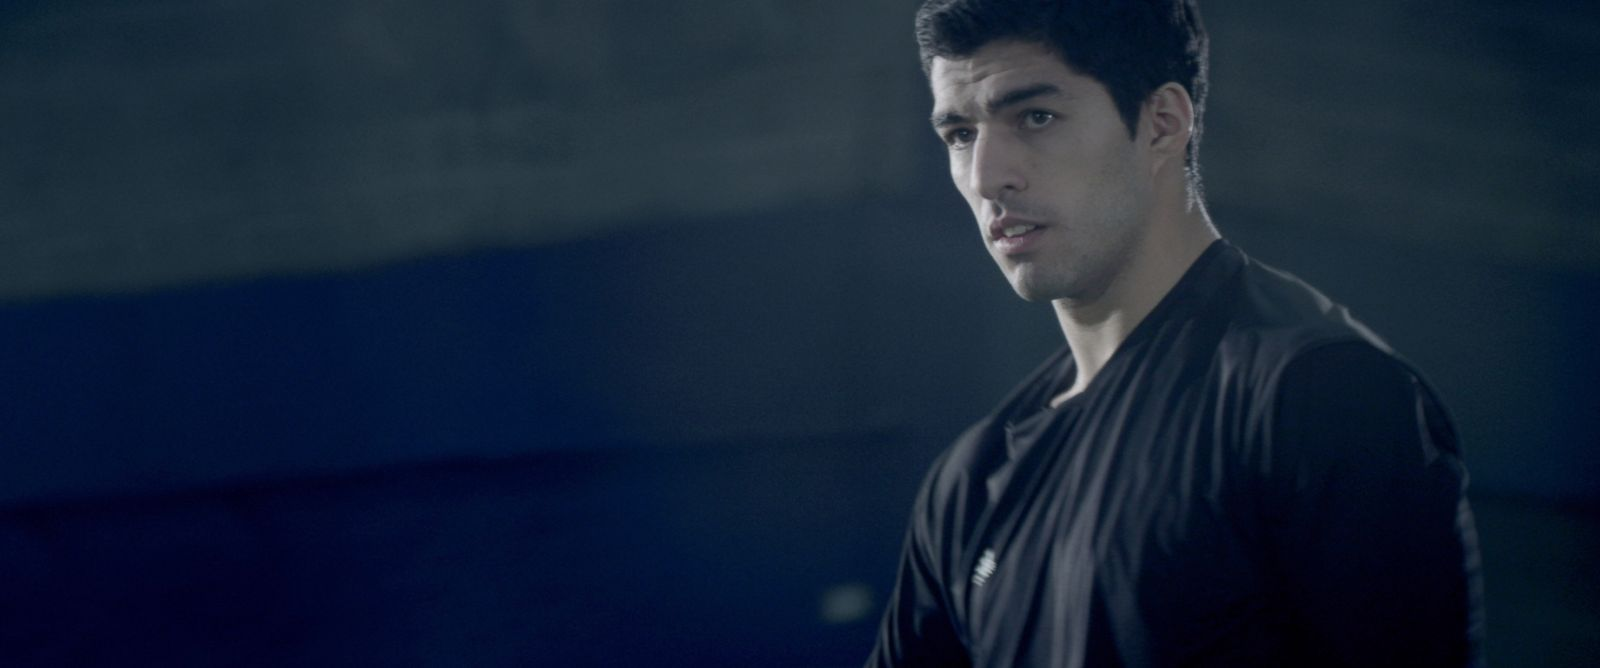 PHOTO: Luis Suarez is seen in an advertisement for Adidas.